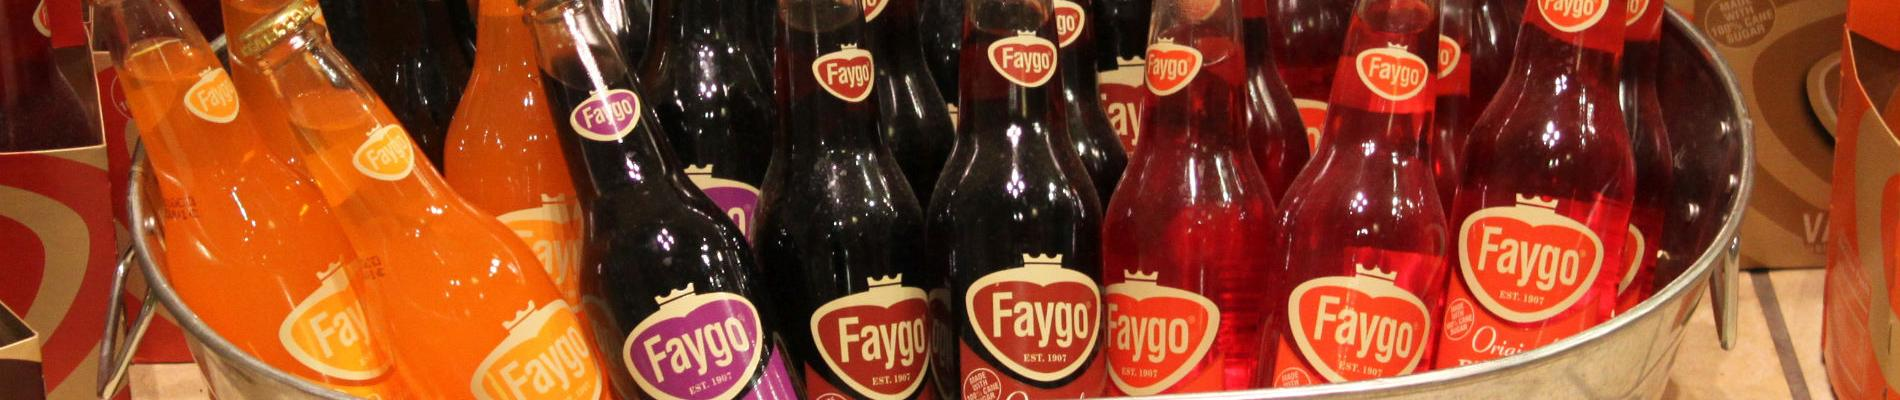 Faygo - The story of a pop, a people and a place